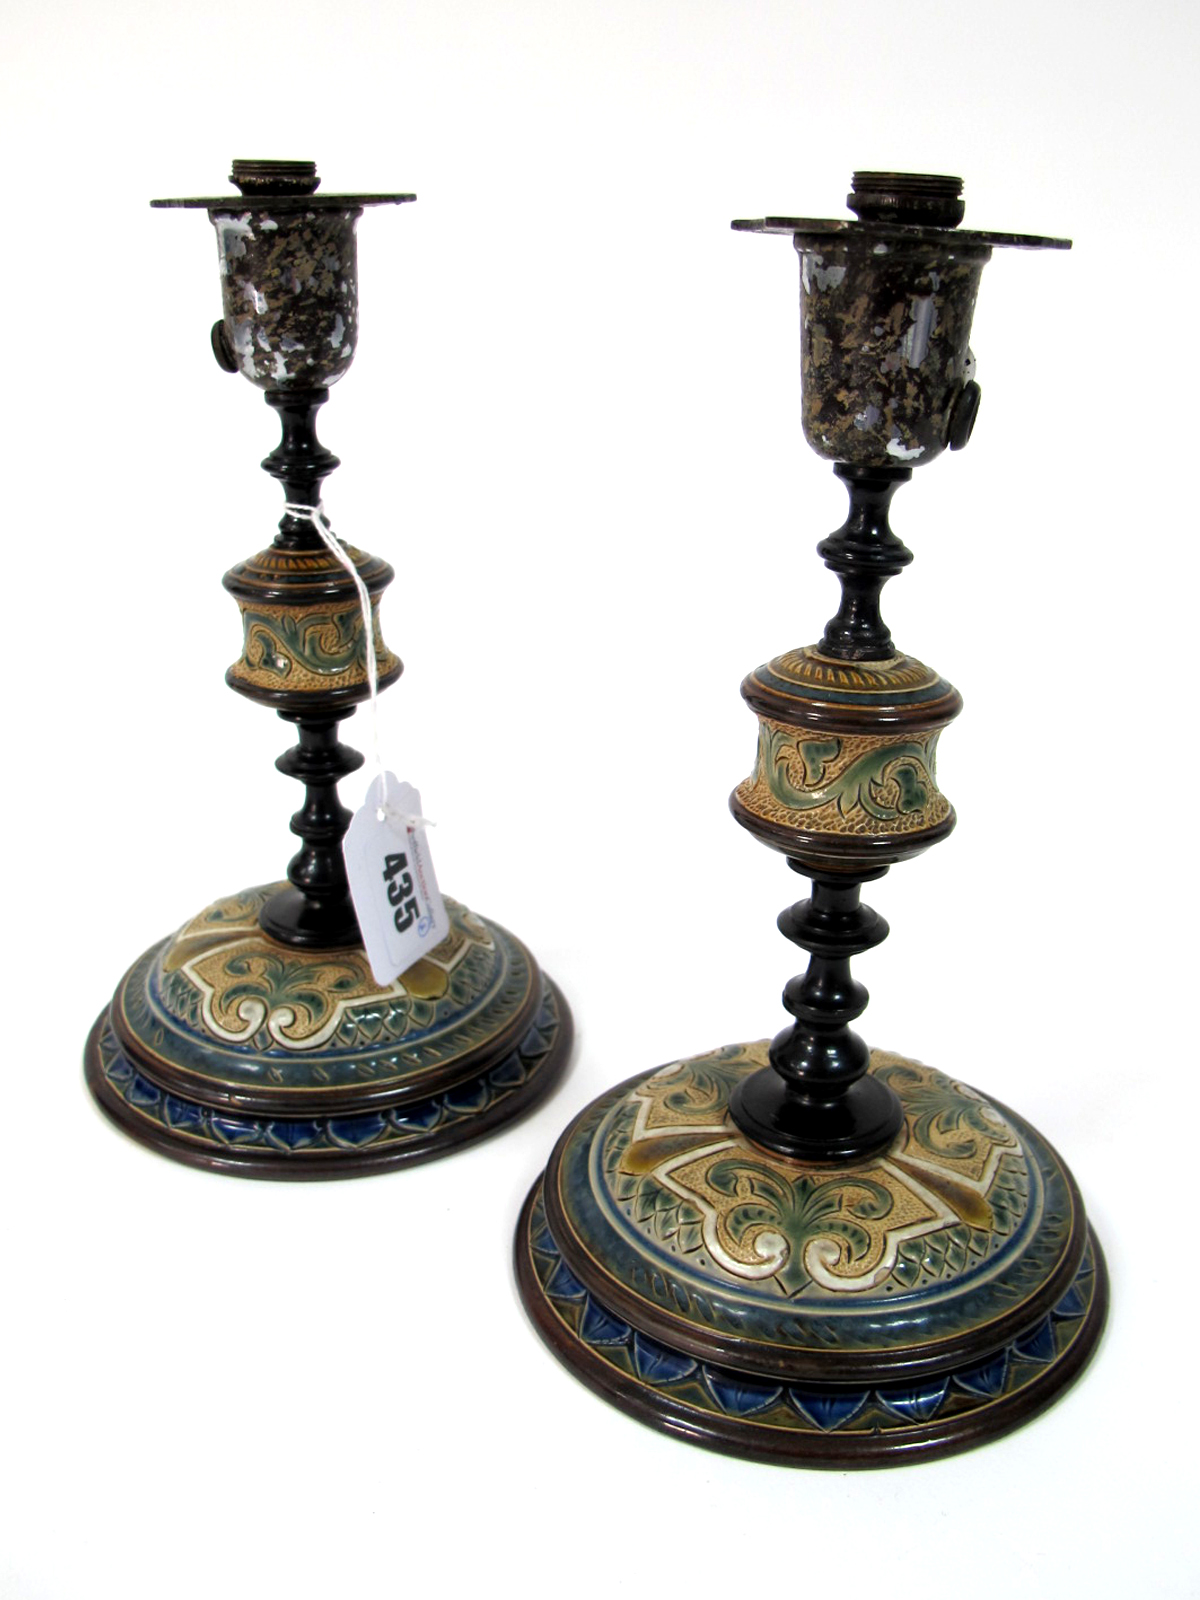 Lot 435 - A Pair of Doulton Lambeth Stoneware Candlesticks, designed by Frank Butler, signed in monogram, with